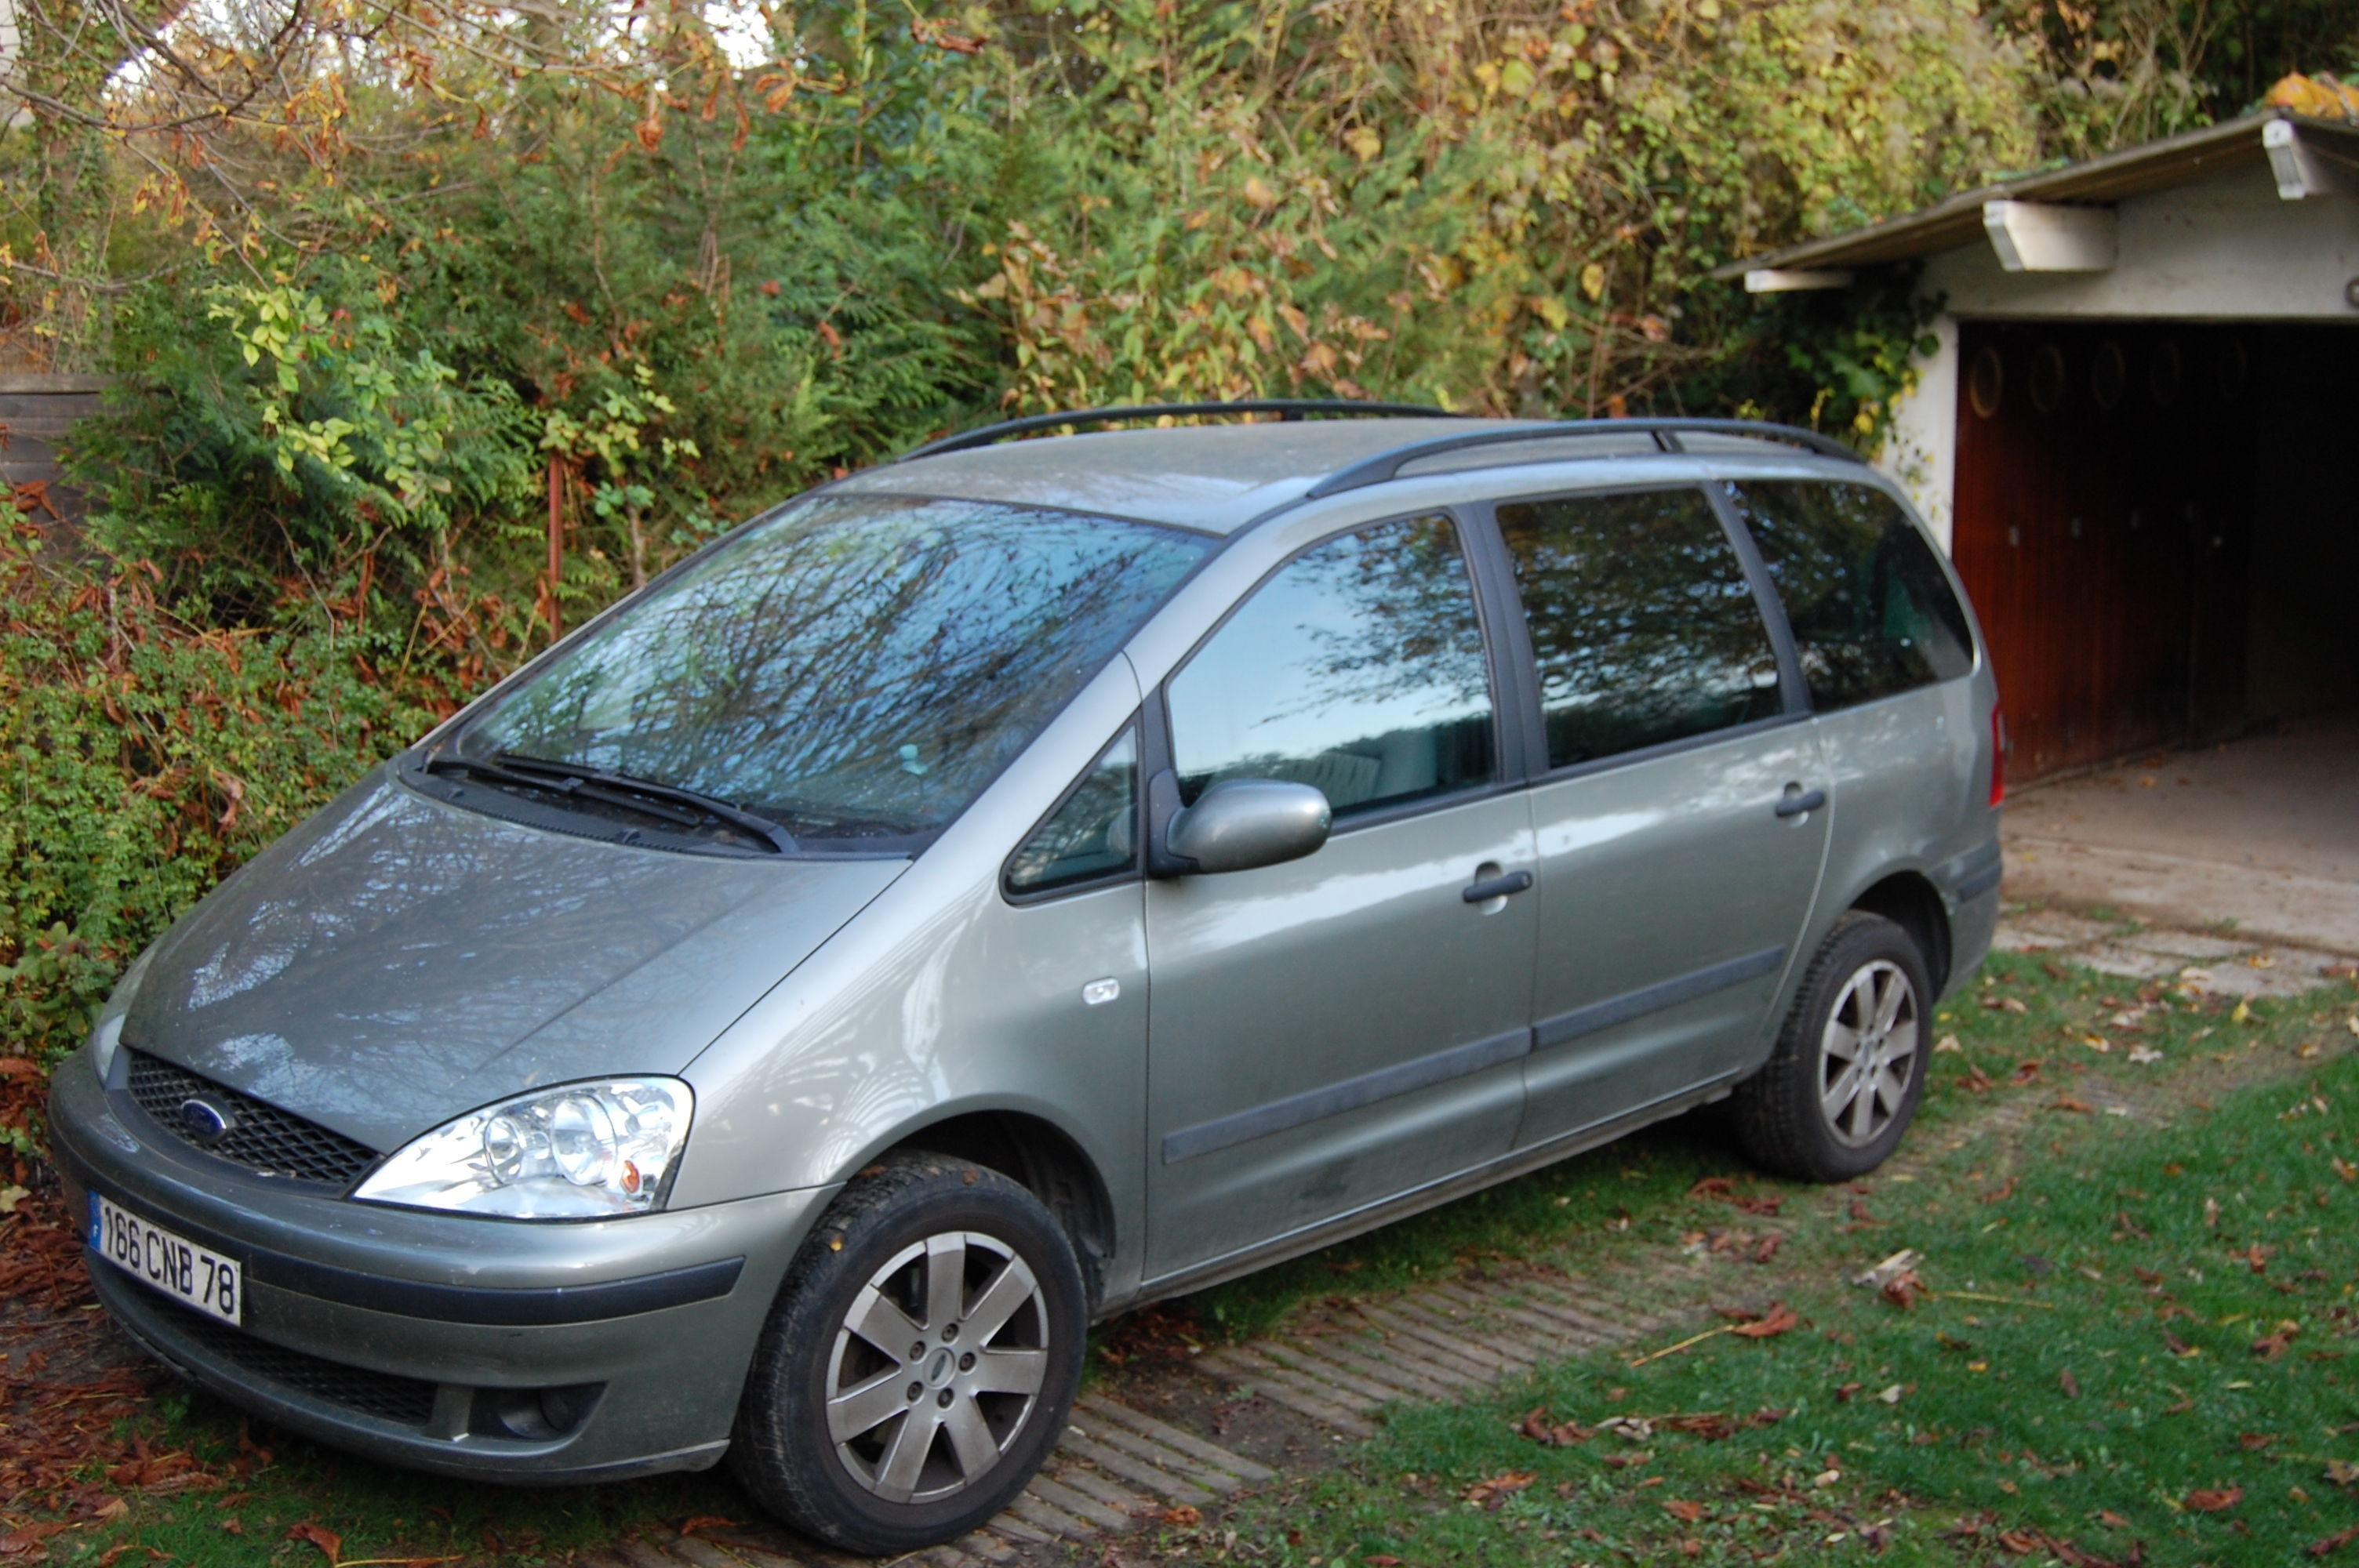 Ford galaxy, 2003, Essence, 7 places